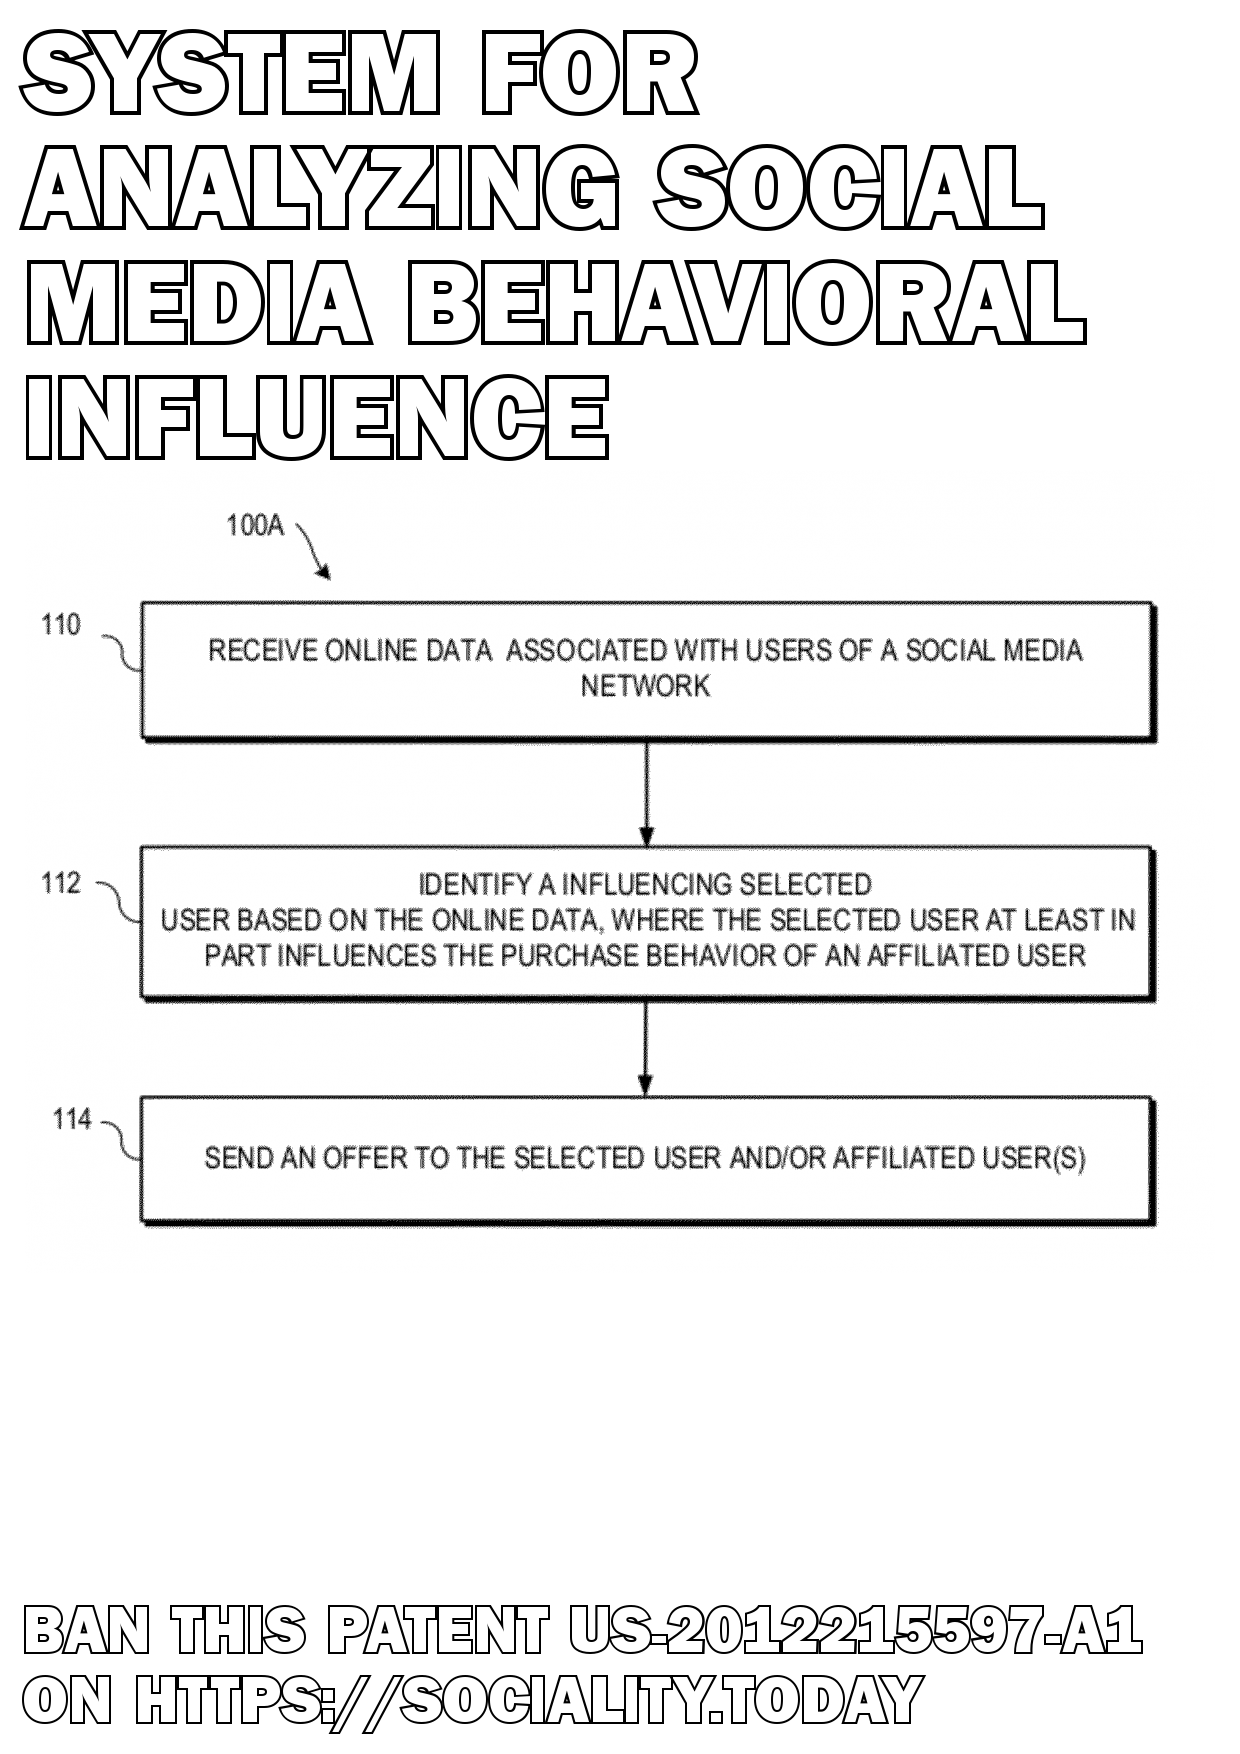 System for analyzing social media behavioral influence  - US-2012215597-A1